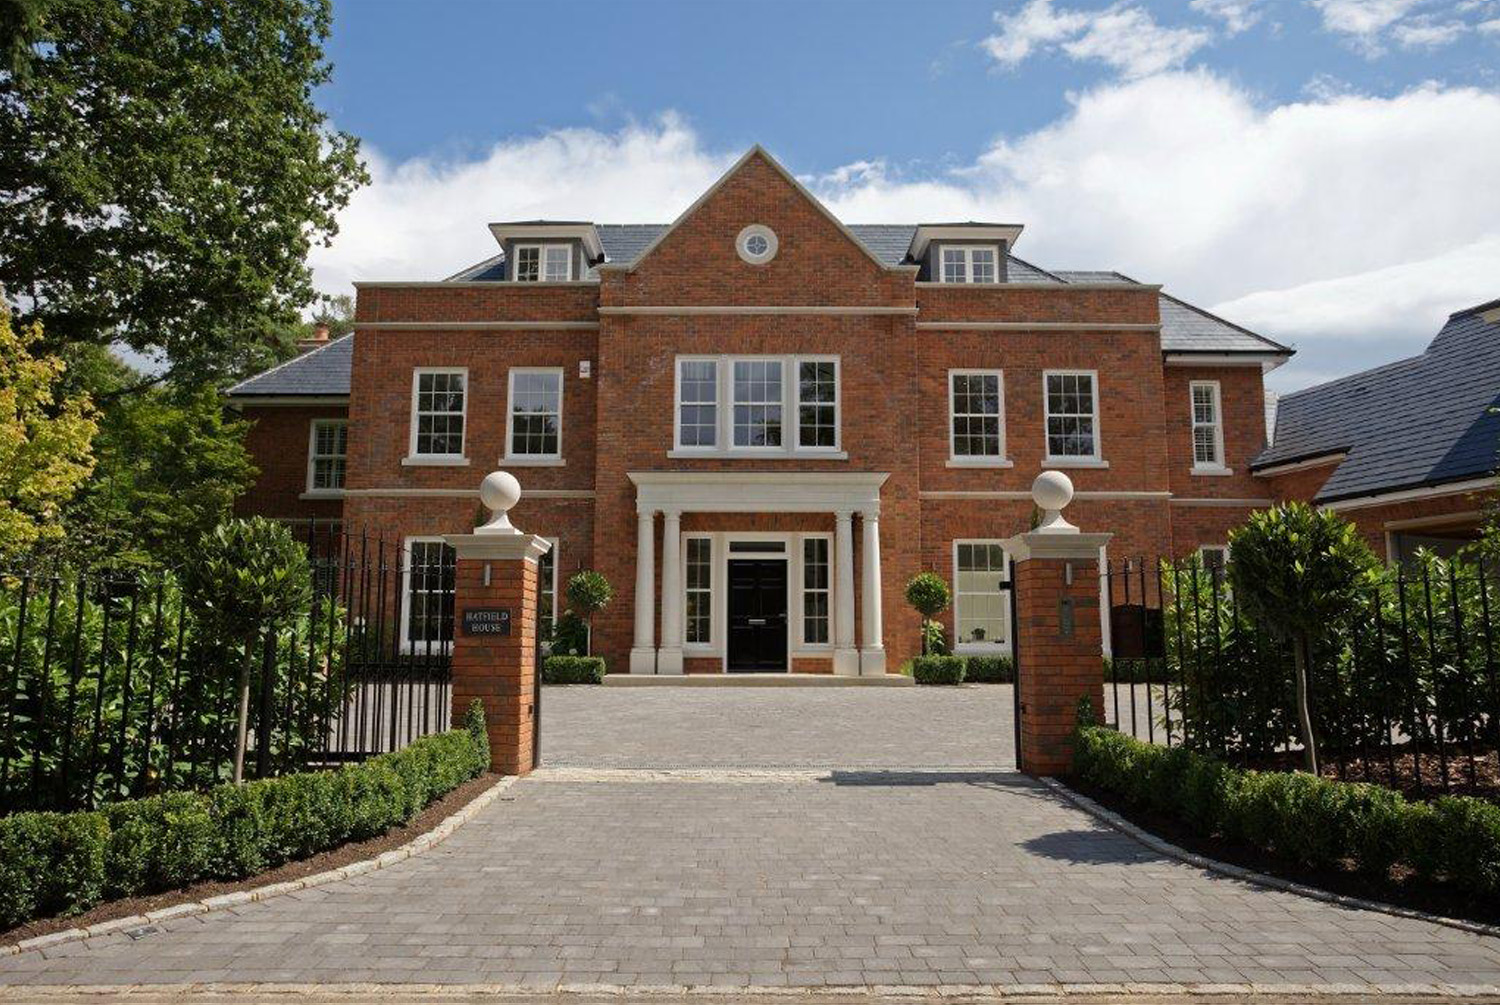 New build homes Berkshire, completed luxury home for Ashbourne Developments Ltd